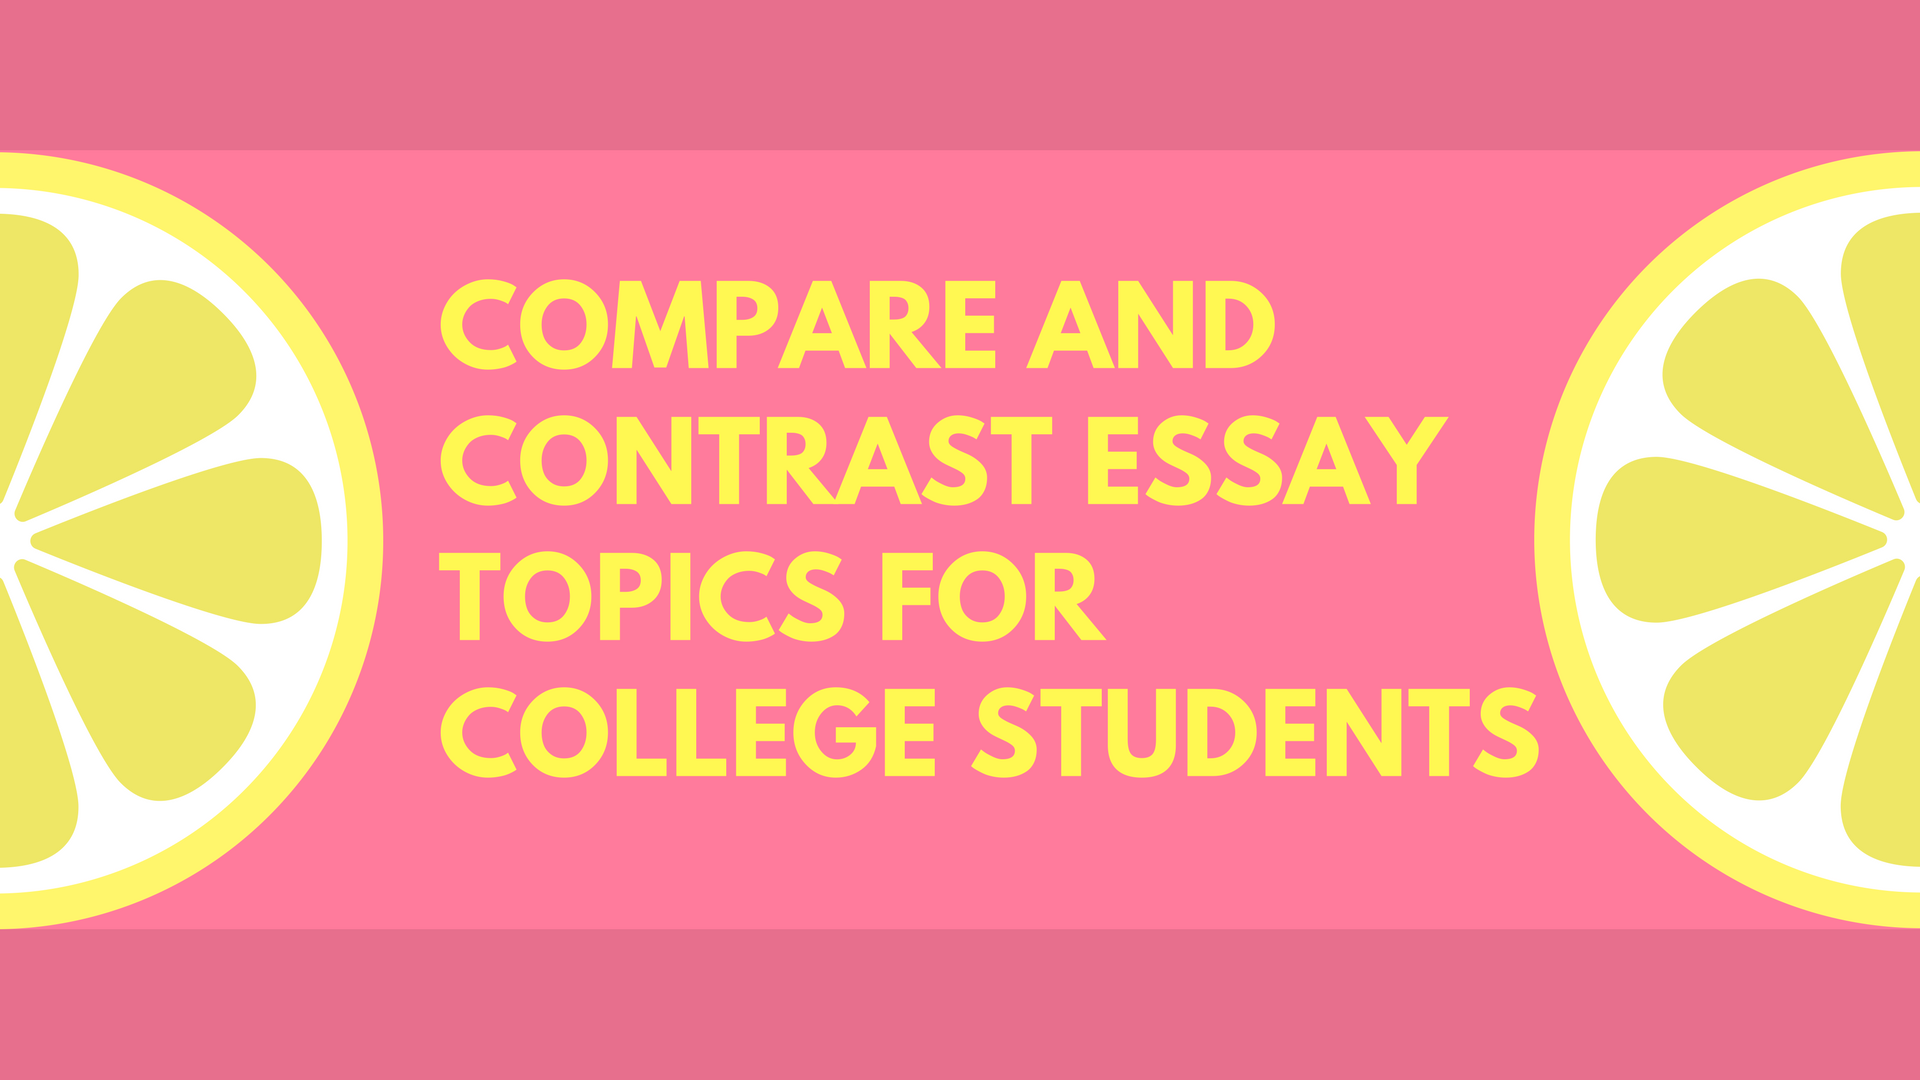 compare and contrast essay topic ideas Whether your students are practicing essay writing or learning to analyze cinema,  compare and contrast essays about movies can be a wonderful.